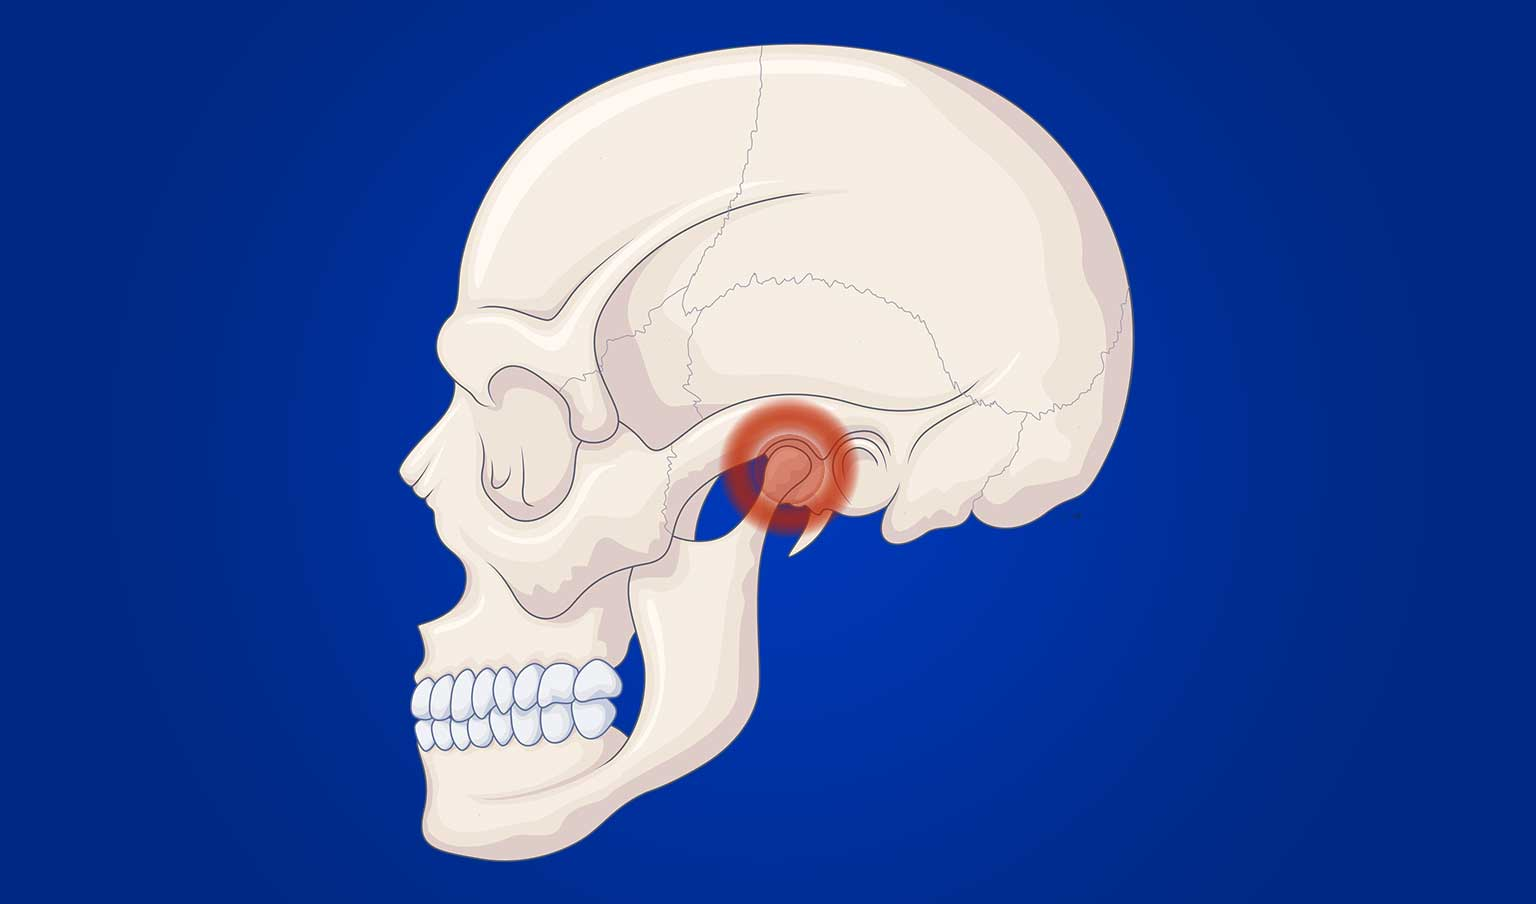 model of human skull on blue background with TMJ area highlighted in red